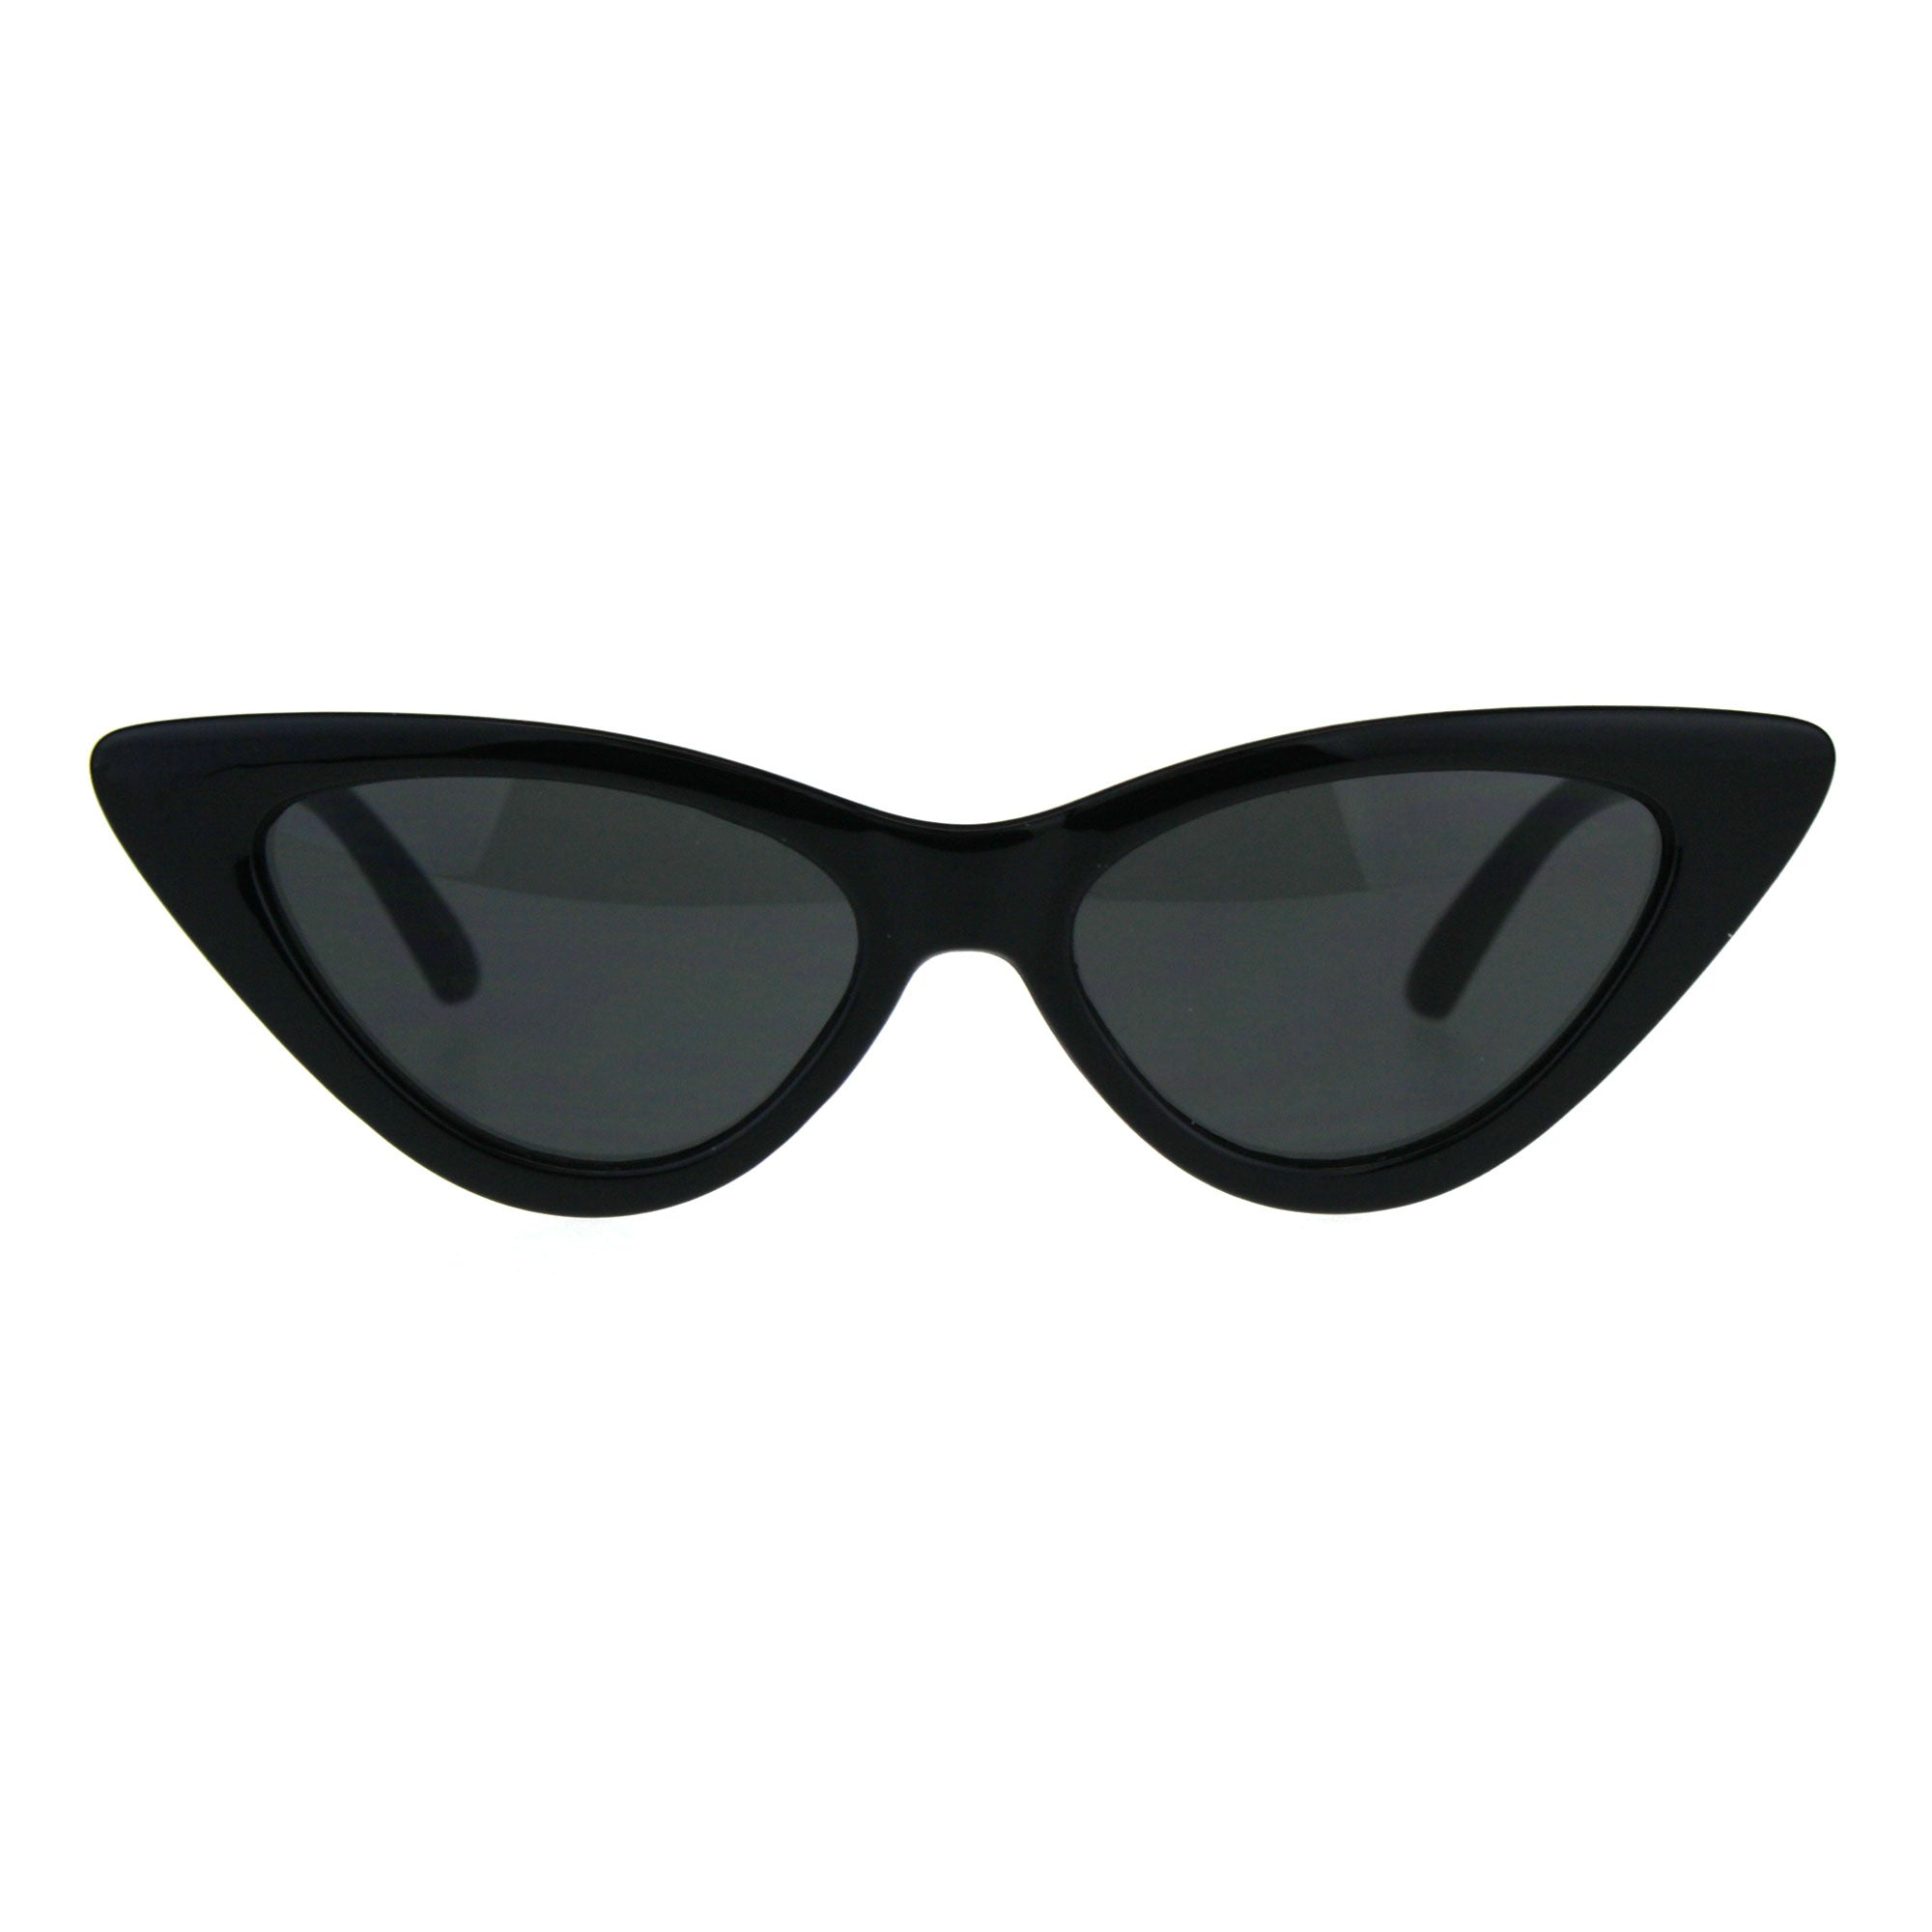 Womens Classic Narrow Cat Eye Gothic Plastic Sunglasses